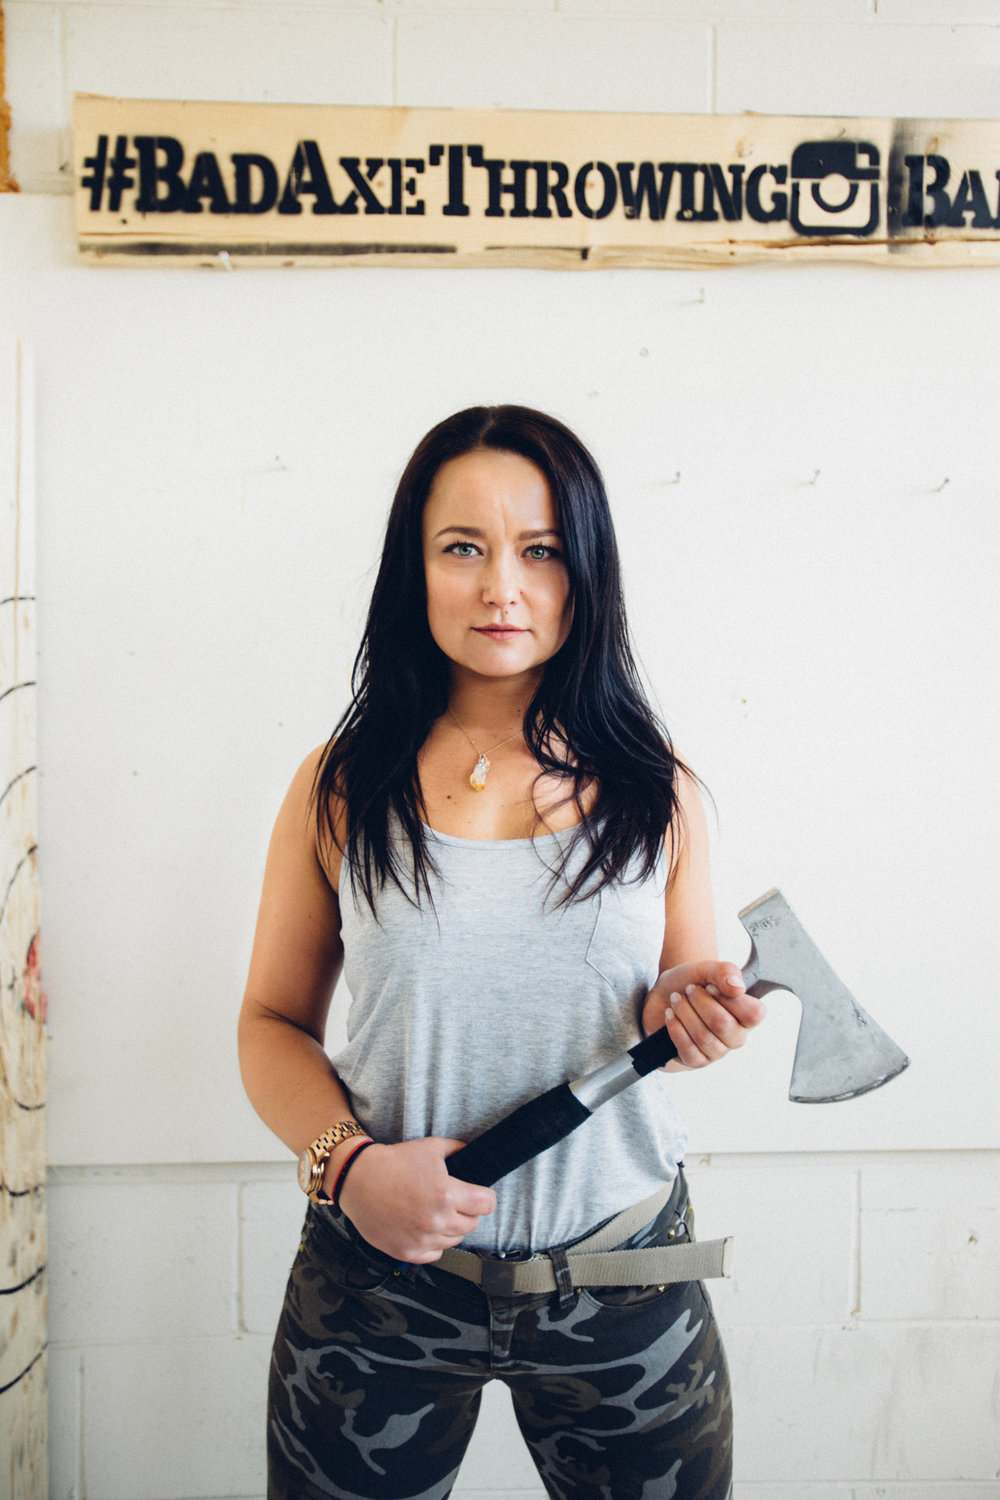 Edyta, Bad Axe Throwing Coach